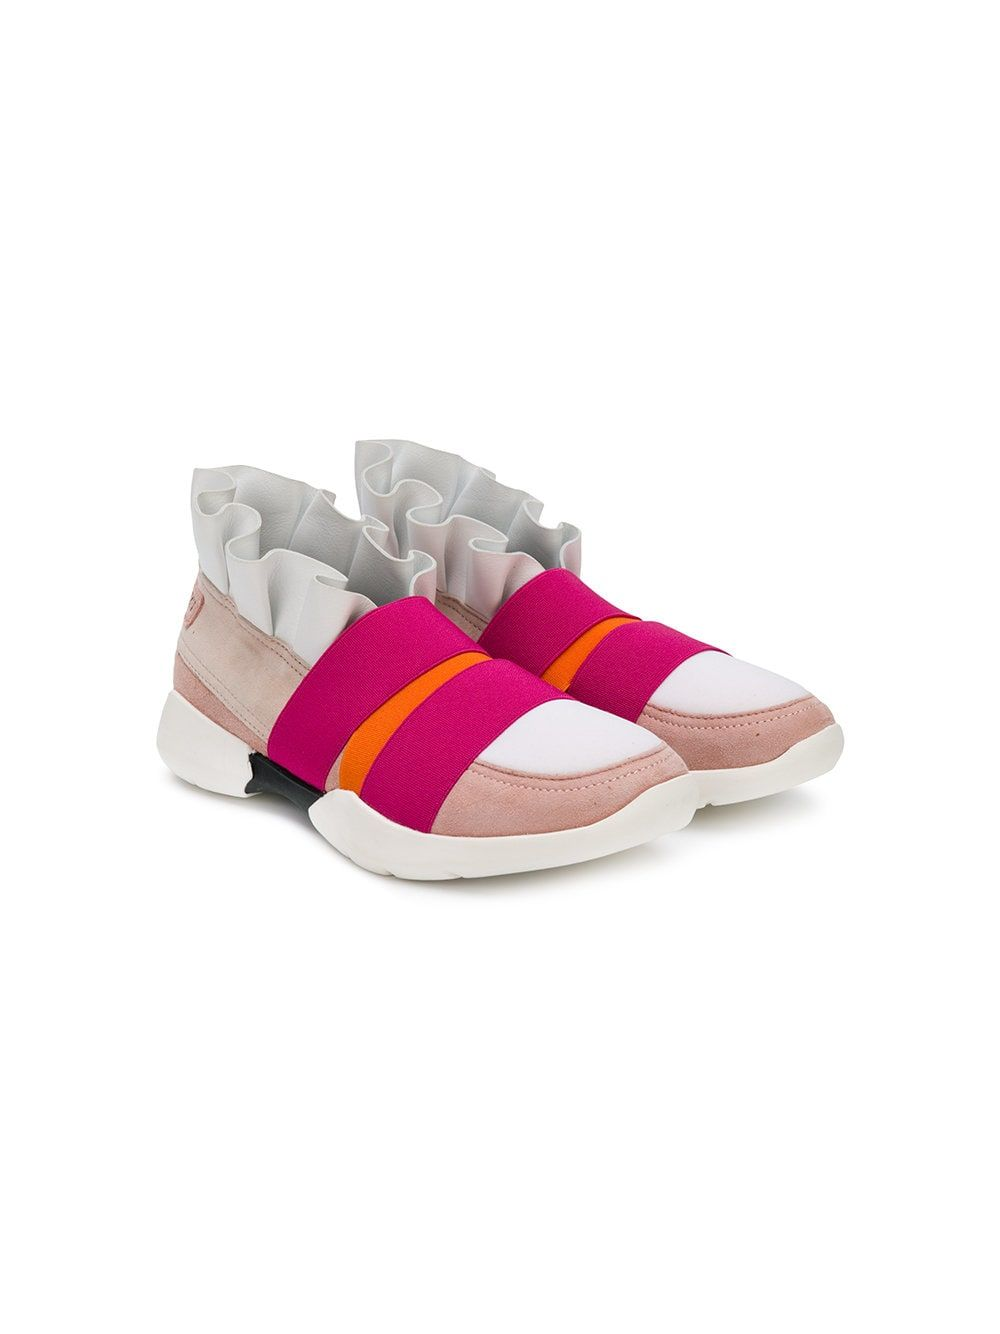 Bandage Sneakers Pucci Emilio Clothes For Junior Styling Ruffle wqtOC8Sp